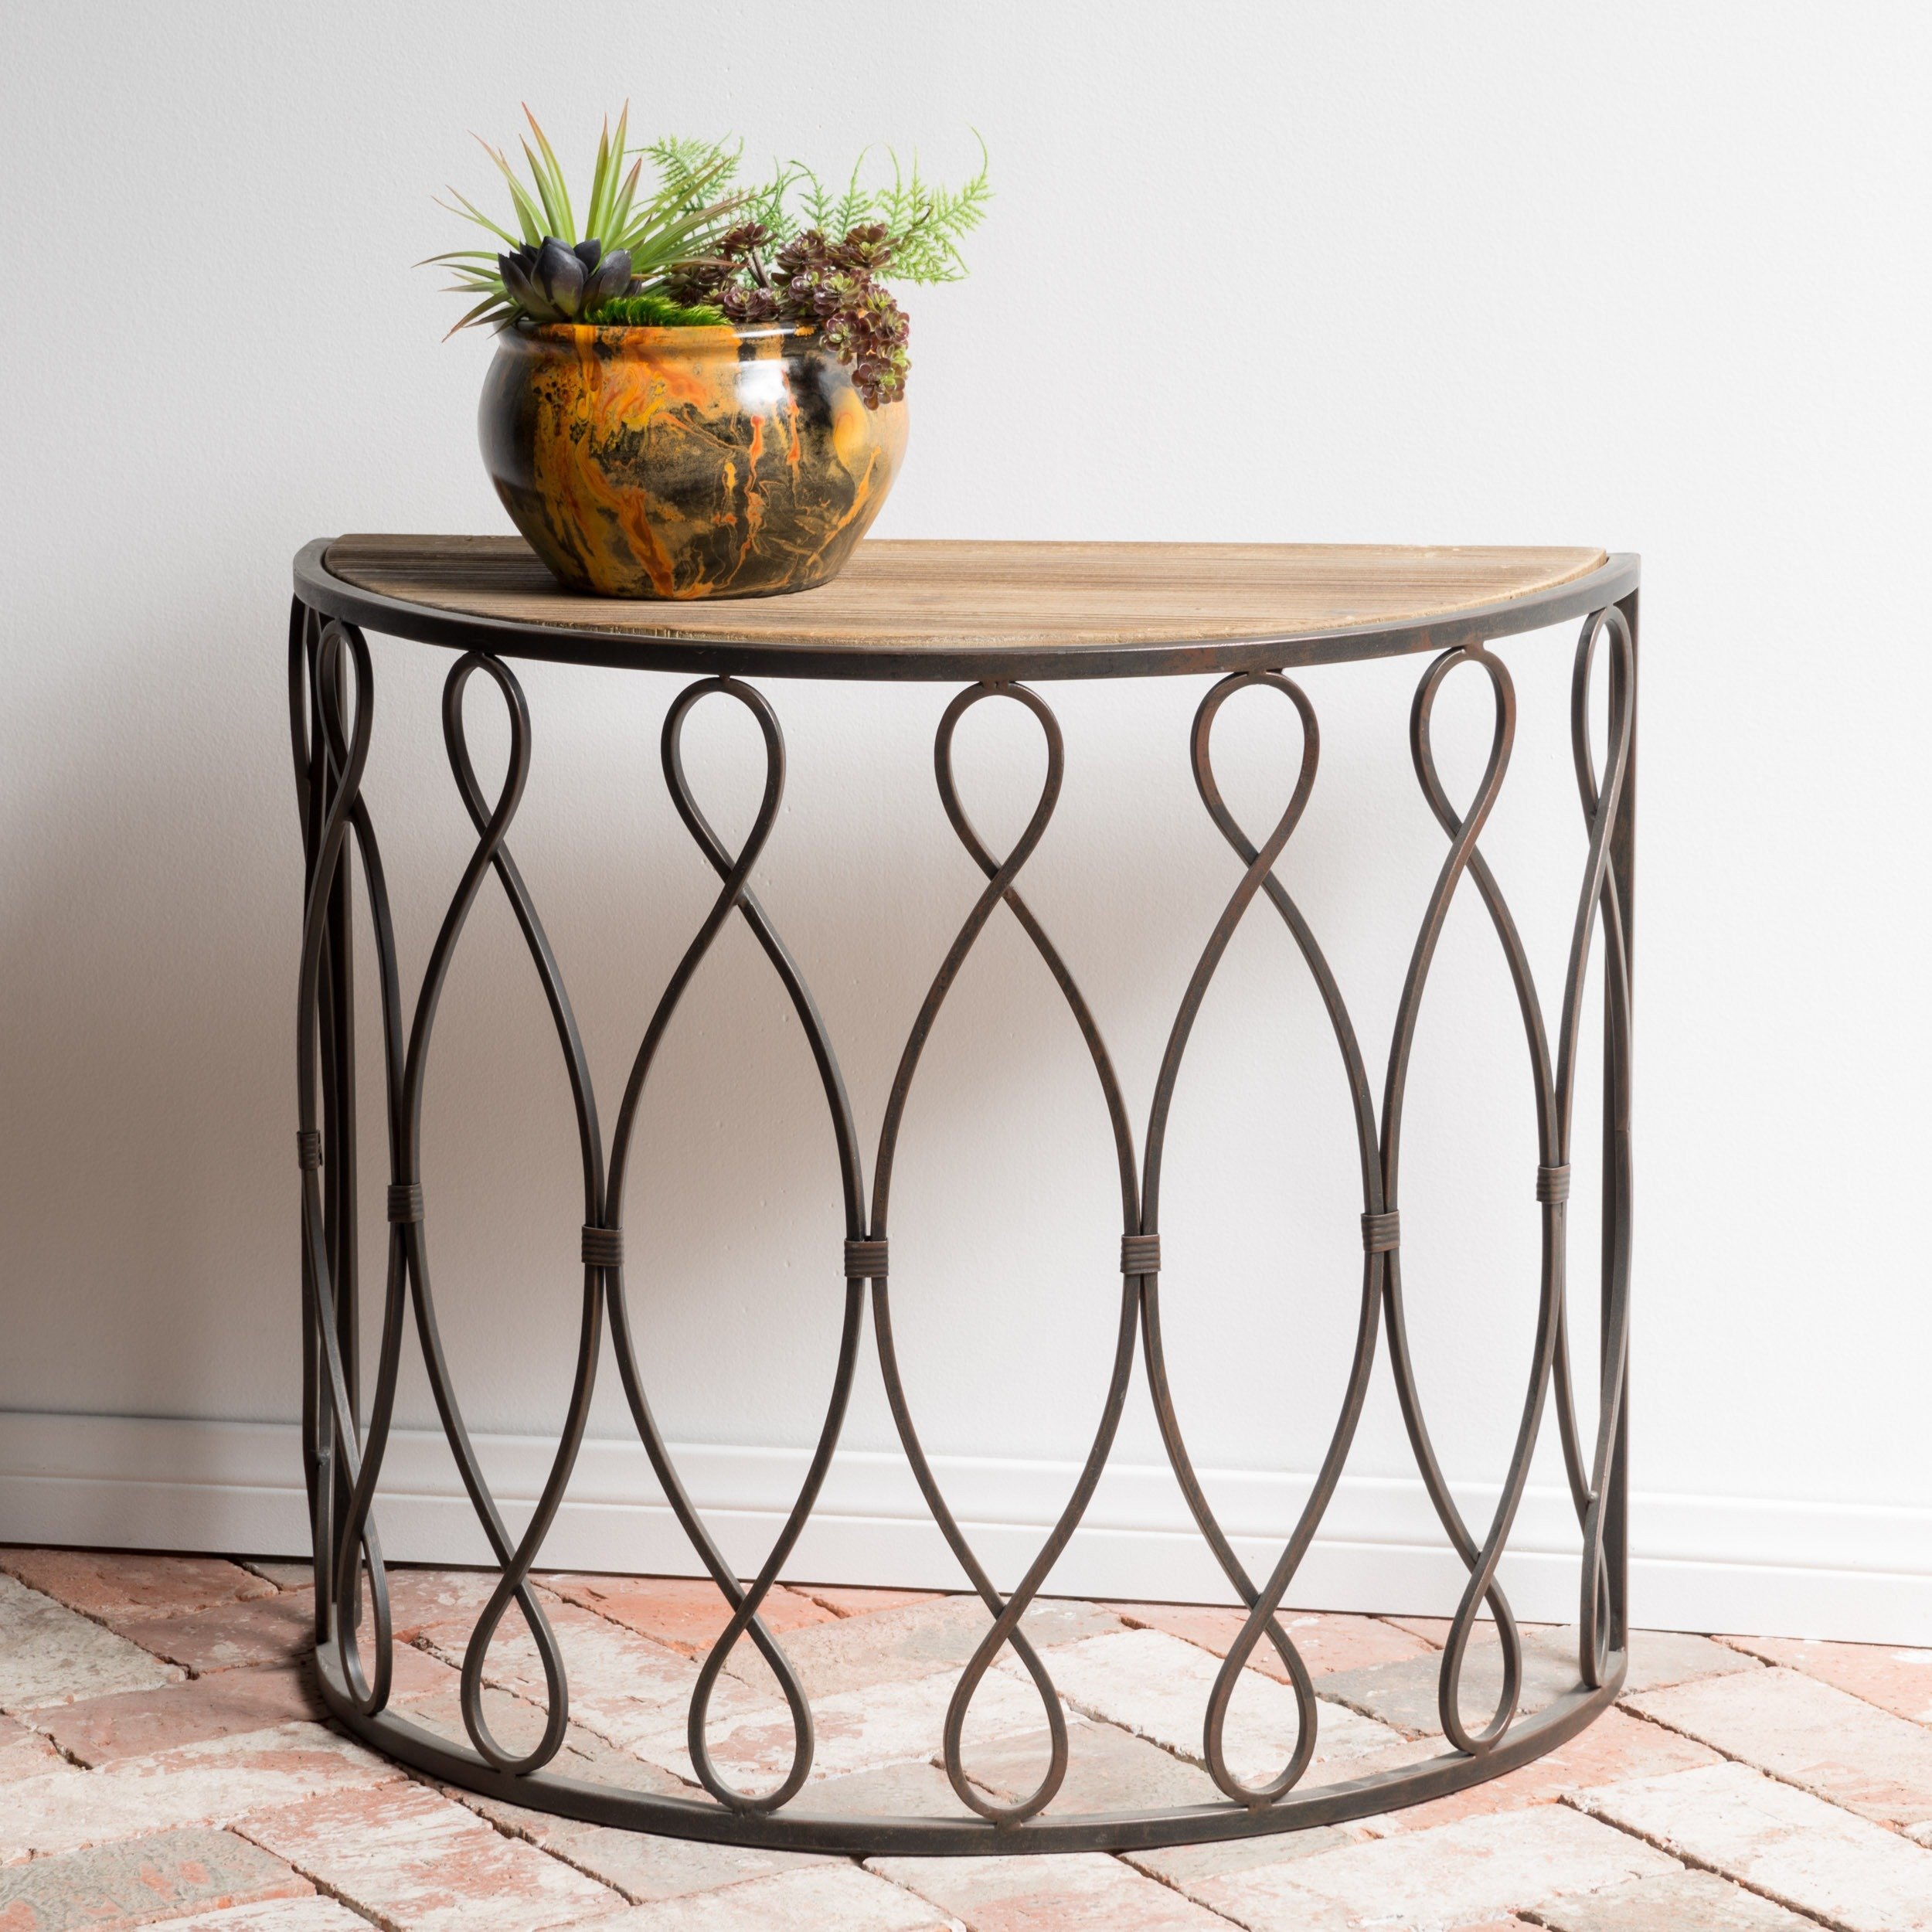 marseille small rustic accent table christopher knight home free shipping today teak lamp tables wicker patio set fabric storage cubes ikea pine dresser nautical lighting indoor